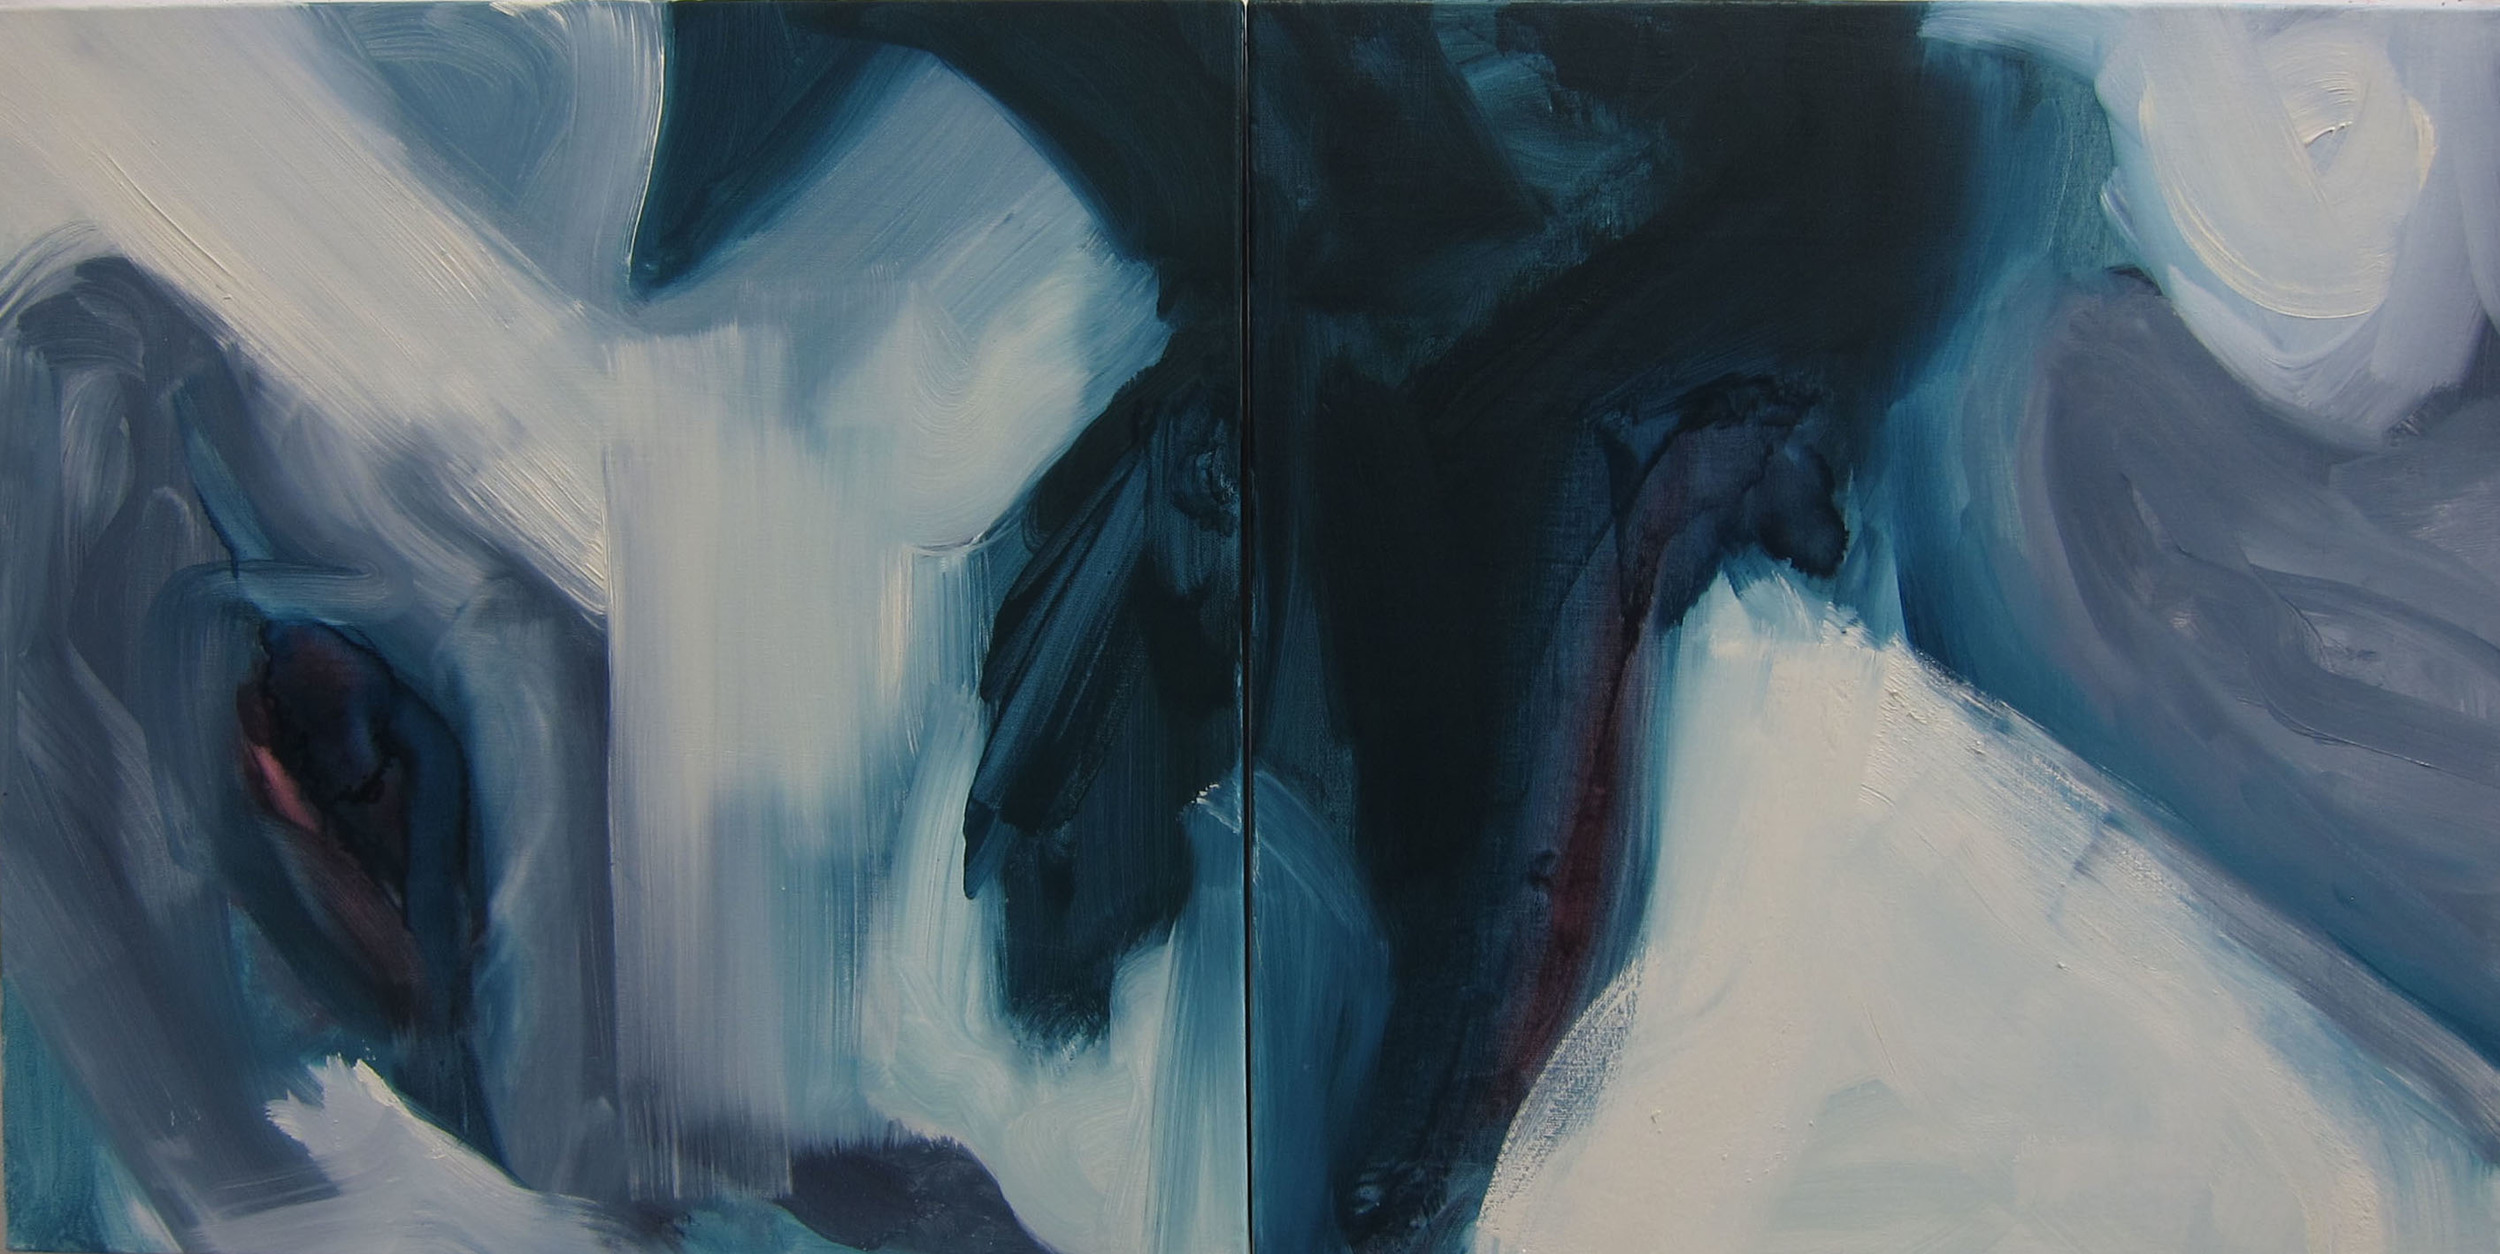 Memory of a Place, 2013, oil on canvas, 20 x 20 inches each.